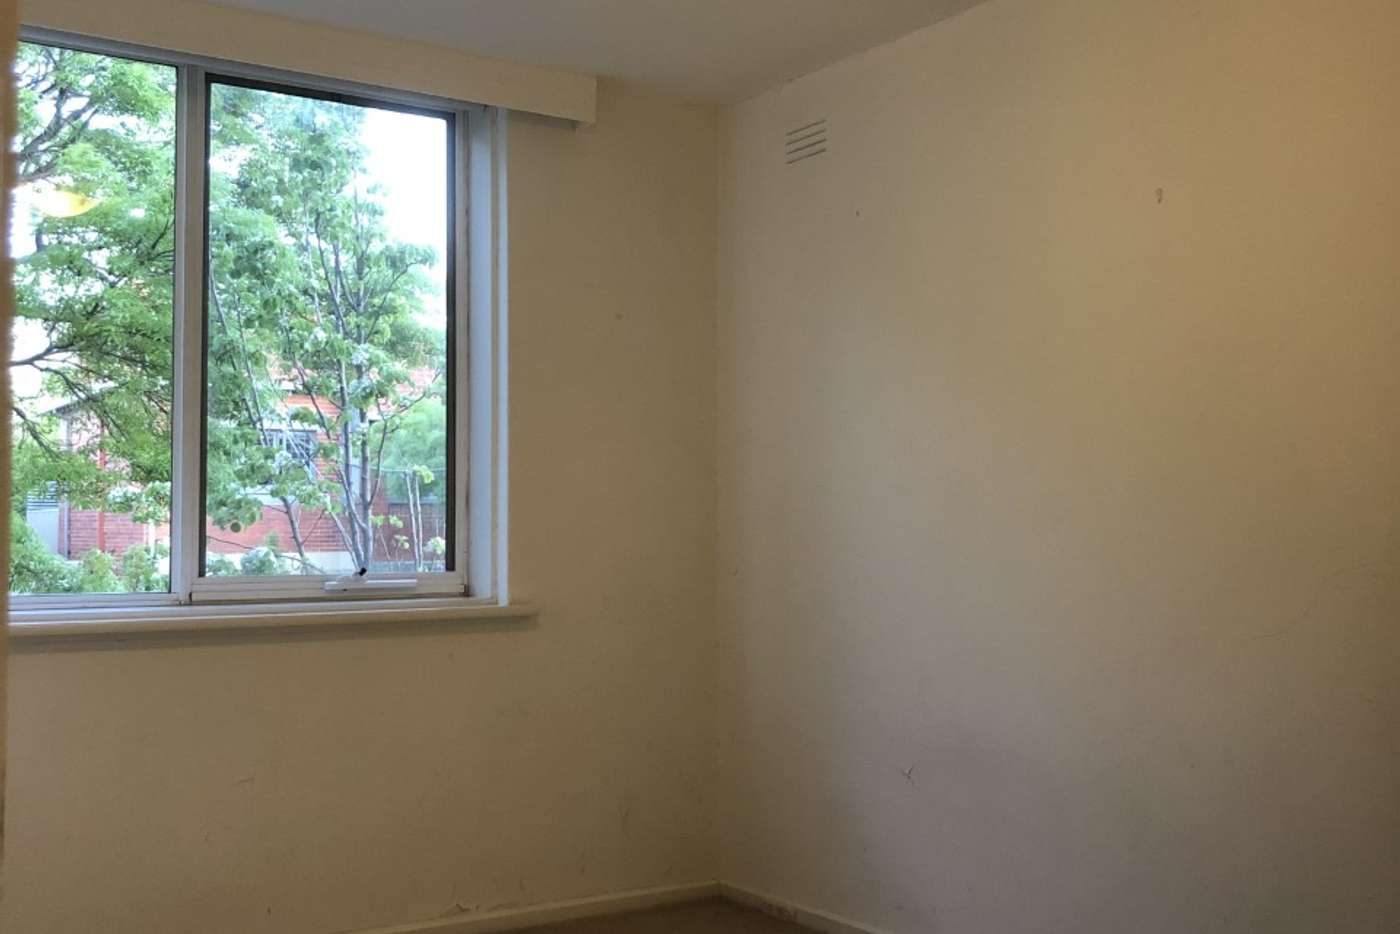 Sixth view of Homely apartment listing, 5/35 Donald Street, Prahran VIC 3181